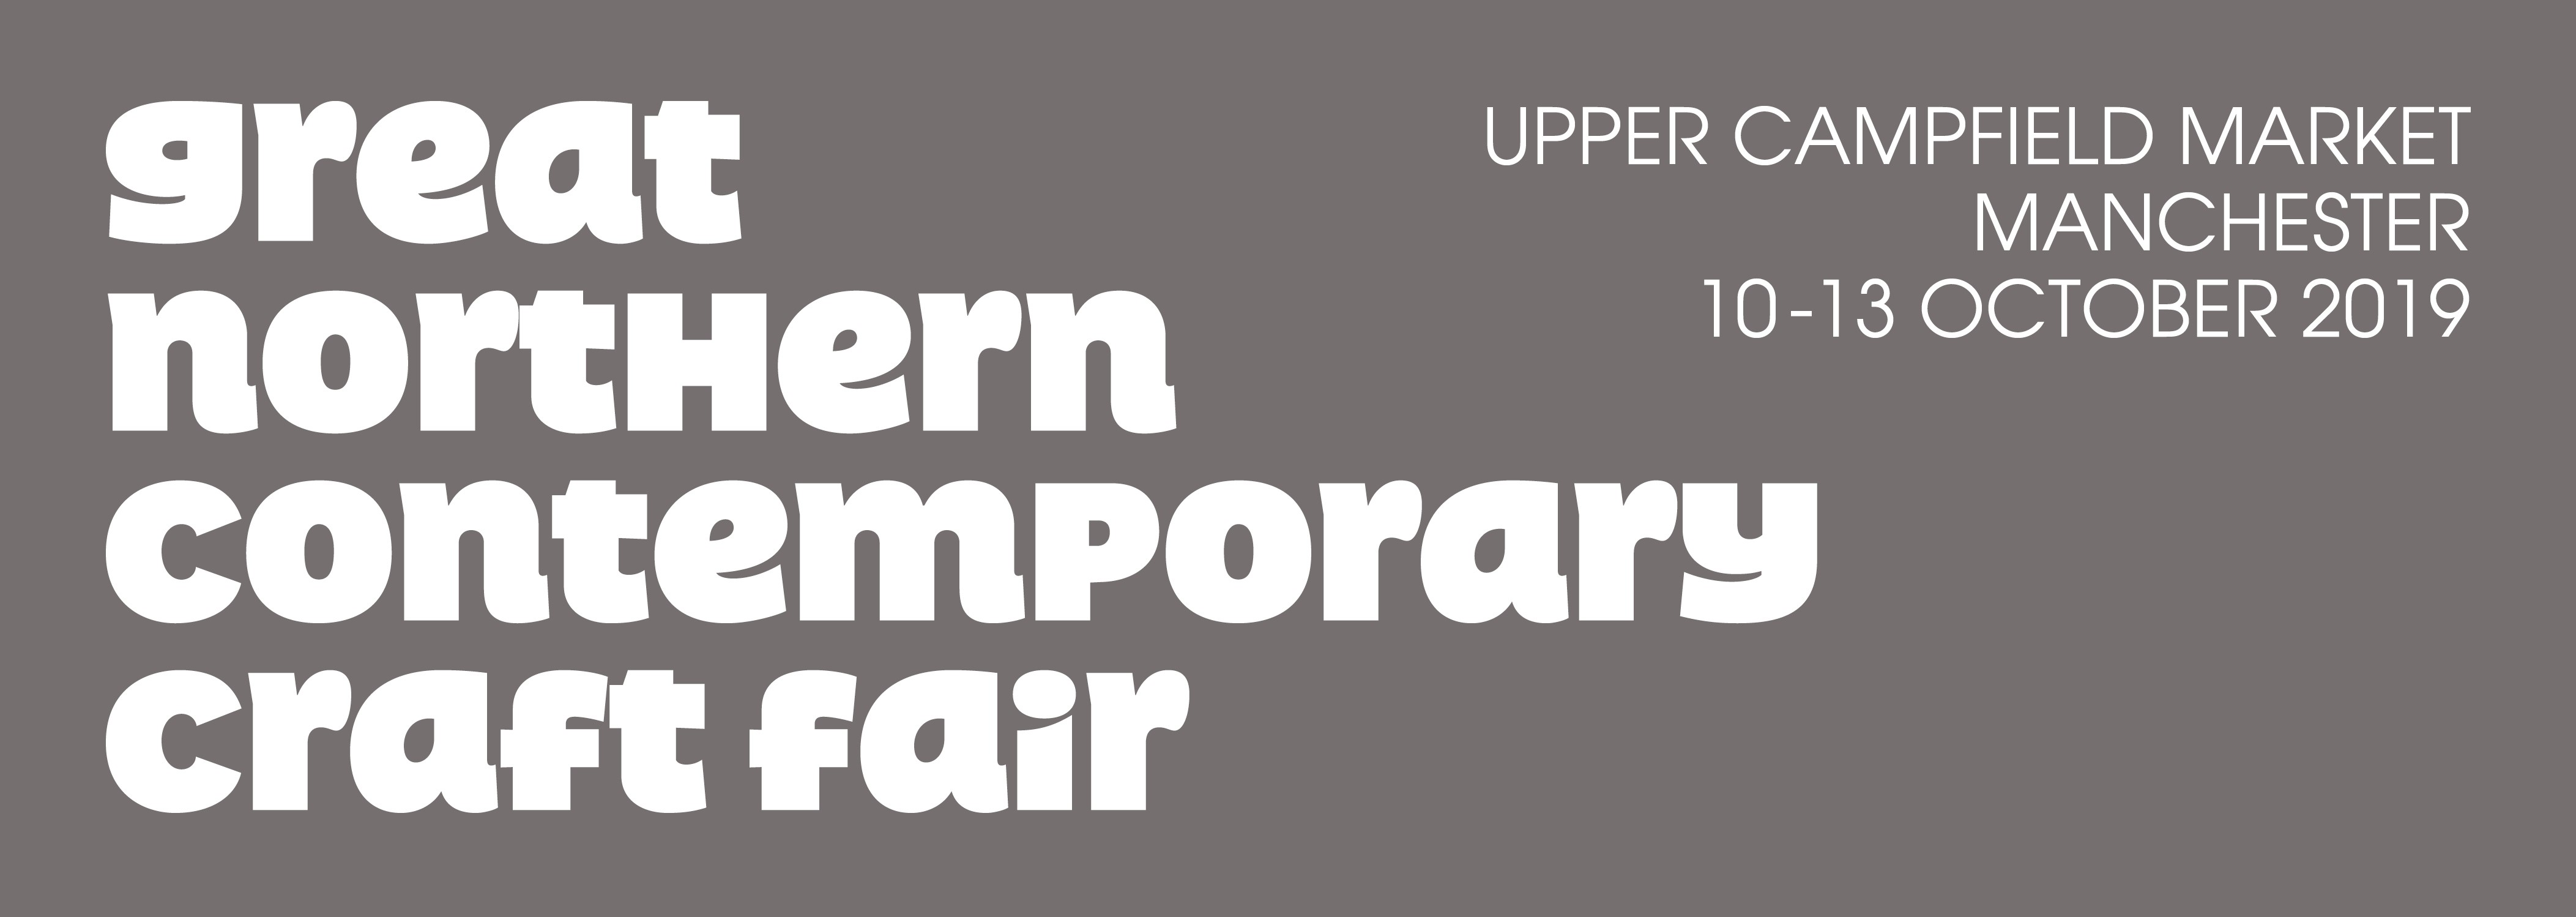 Header for the Great Northern Contemporary Craft Fair